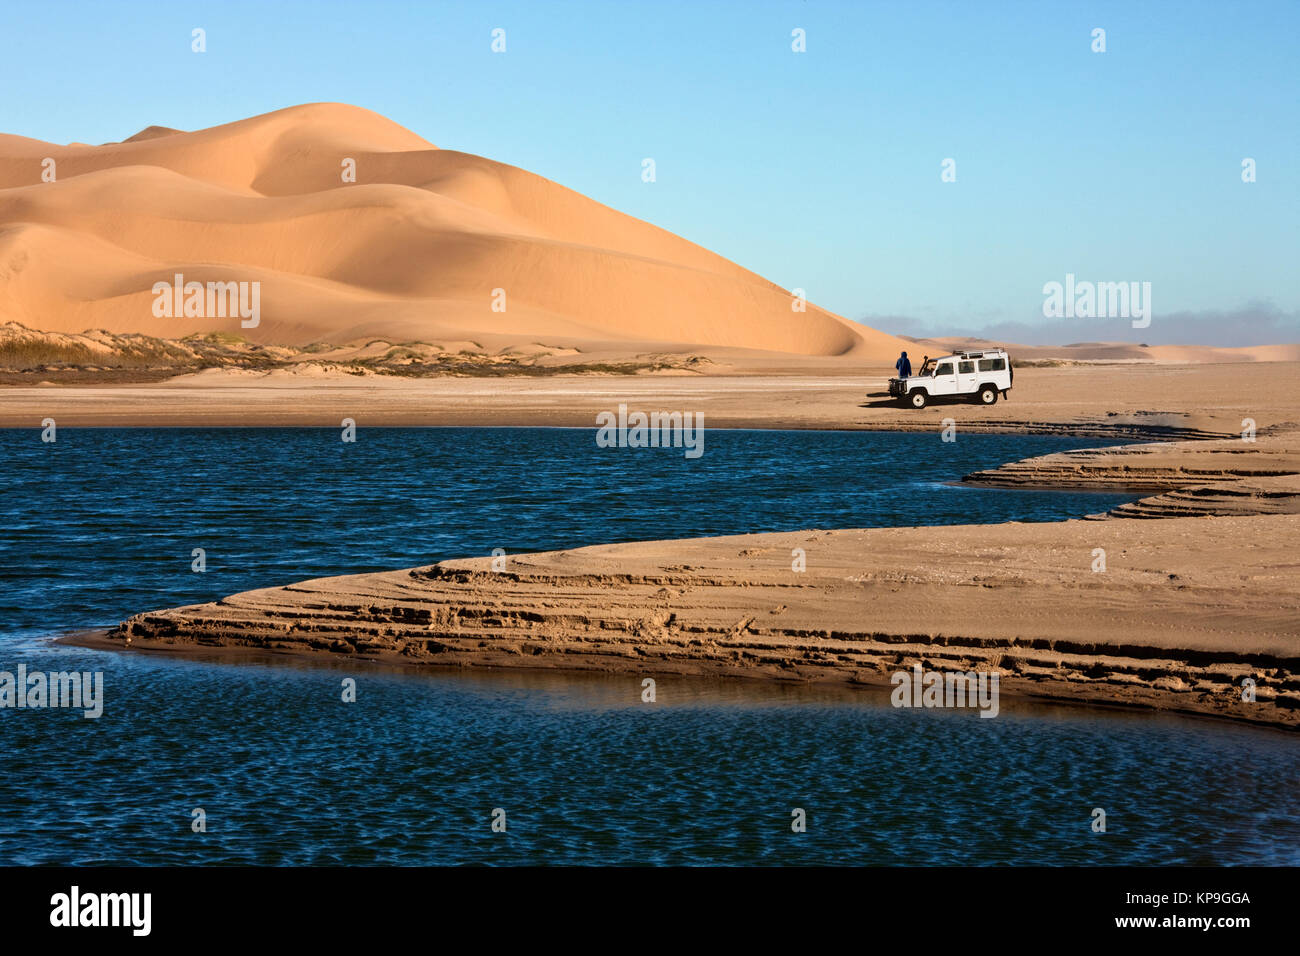 Adventure tourists with vehicle in the Namib Desert in Namib-Nuakluft National Park near Sandwich Bay on the coast - Stock Image